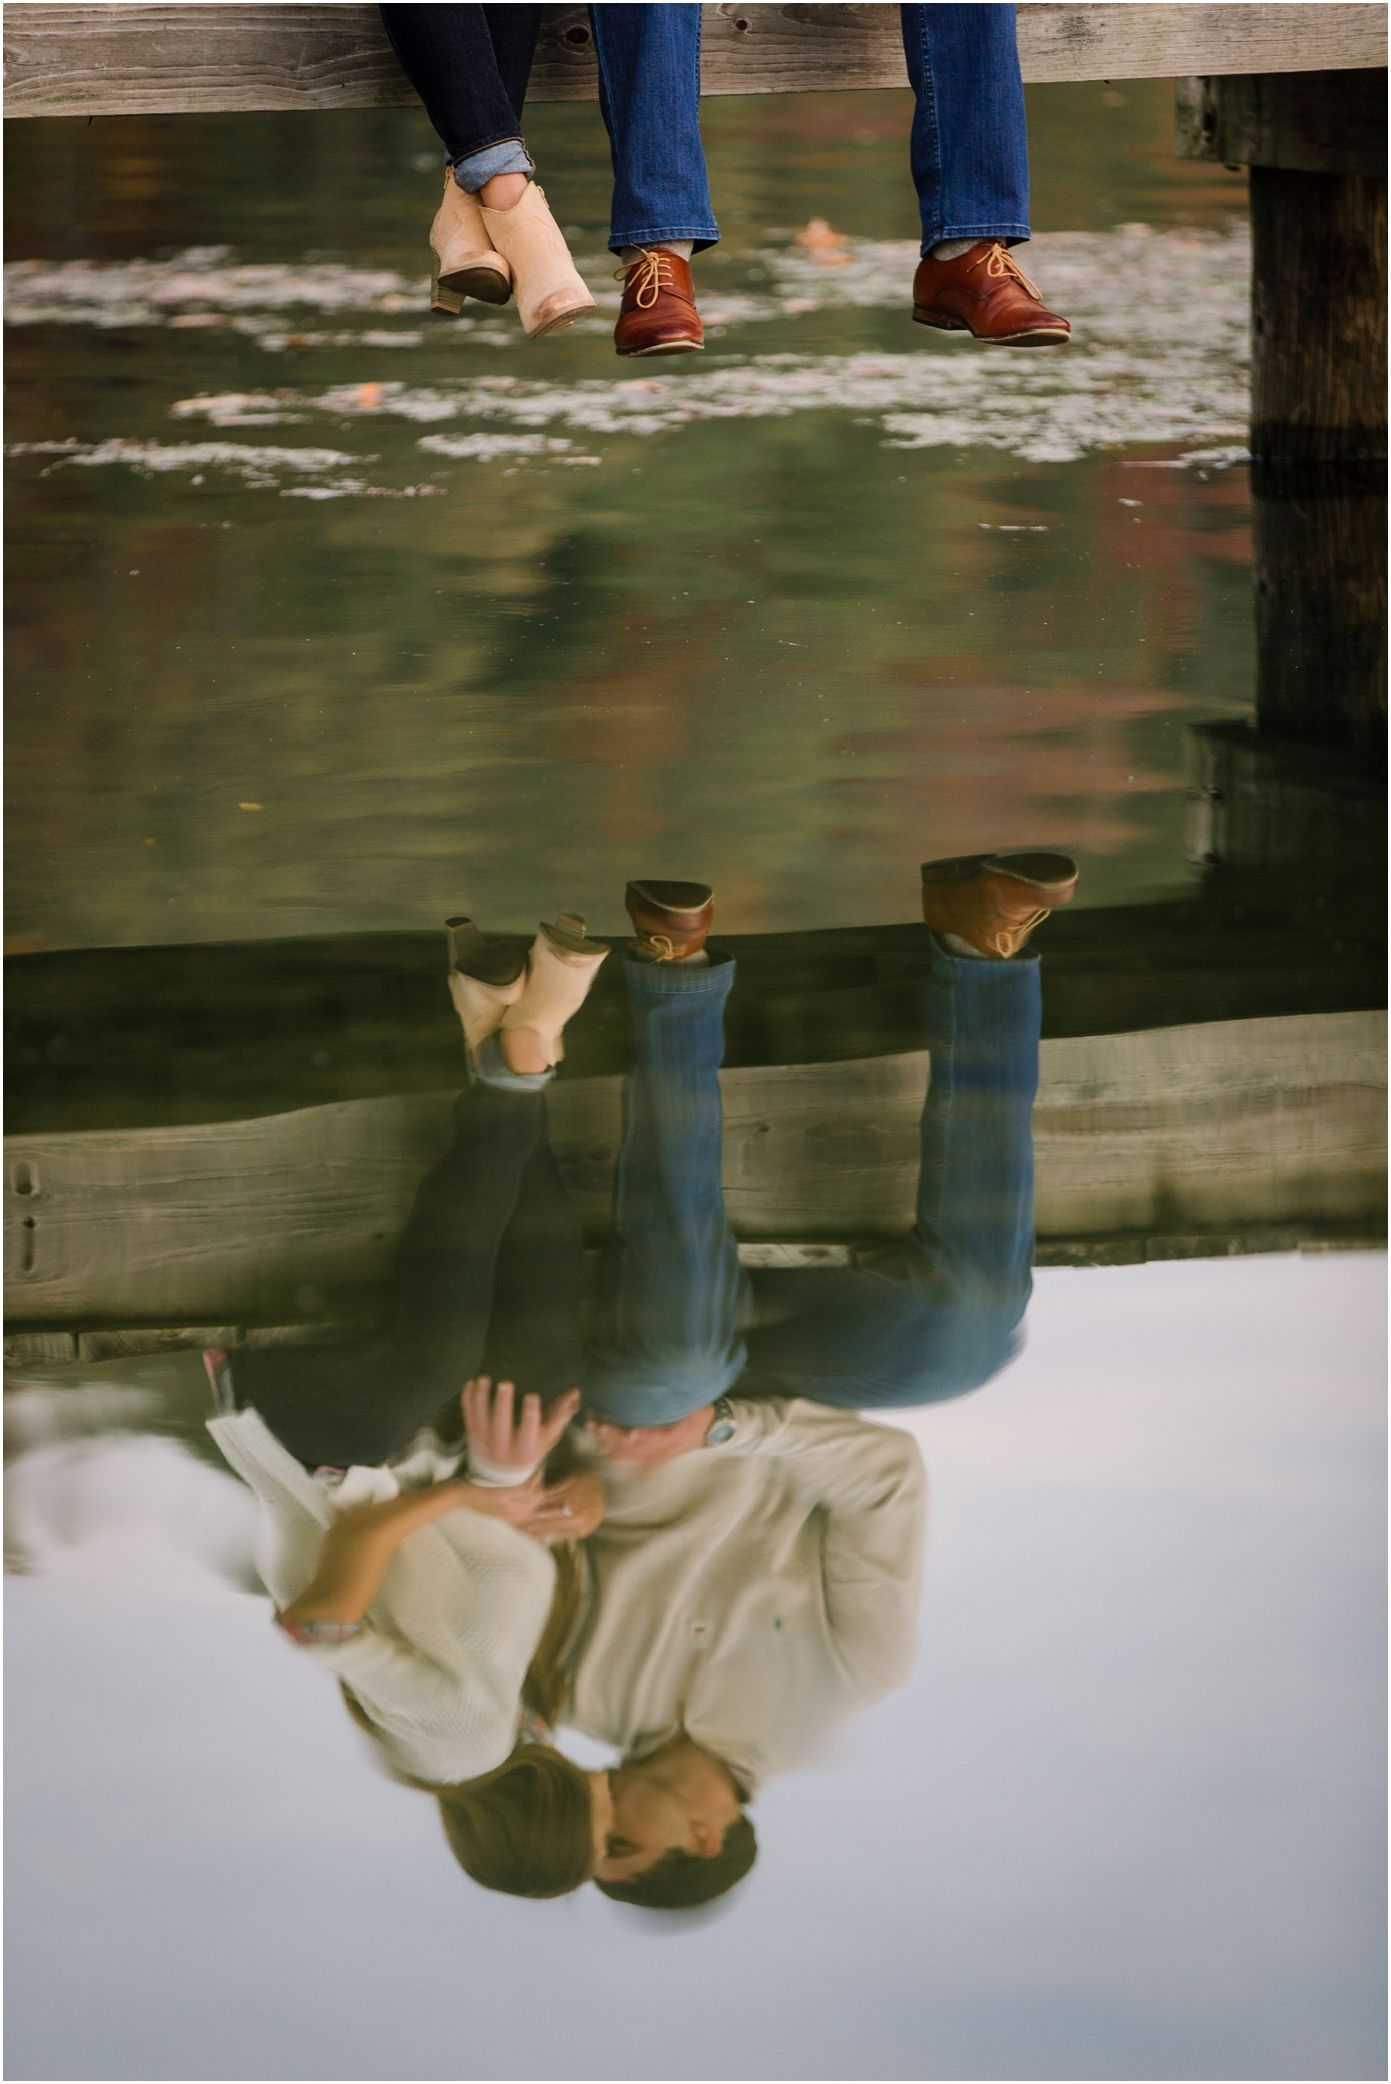 Creative Engagement Photo Ideas Sitting On A Dock With A Reflection On The Water In K In 2020 Creative Engagement Photo Rainy Engagement Photos Water Engagement Photos